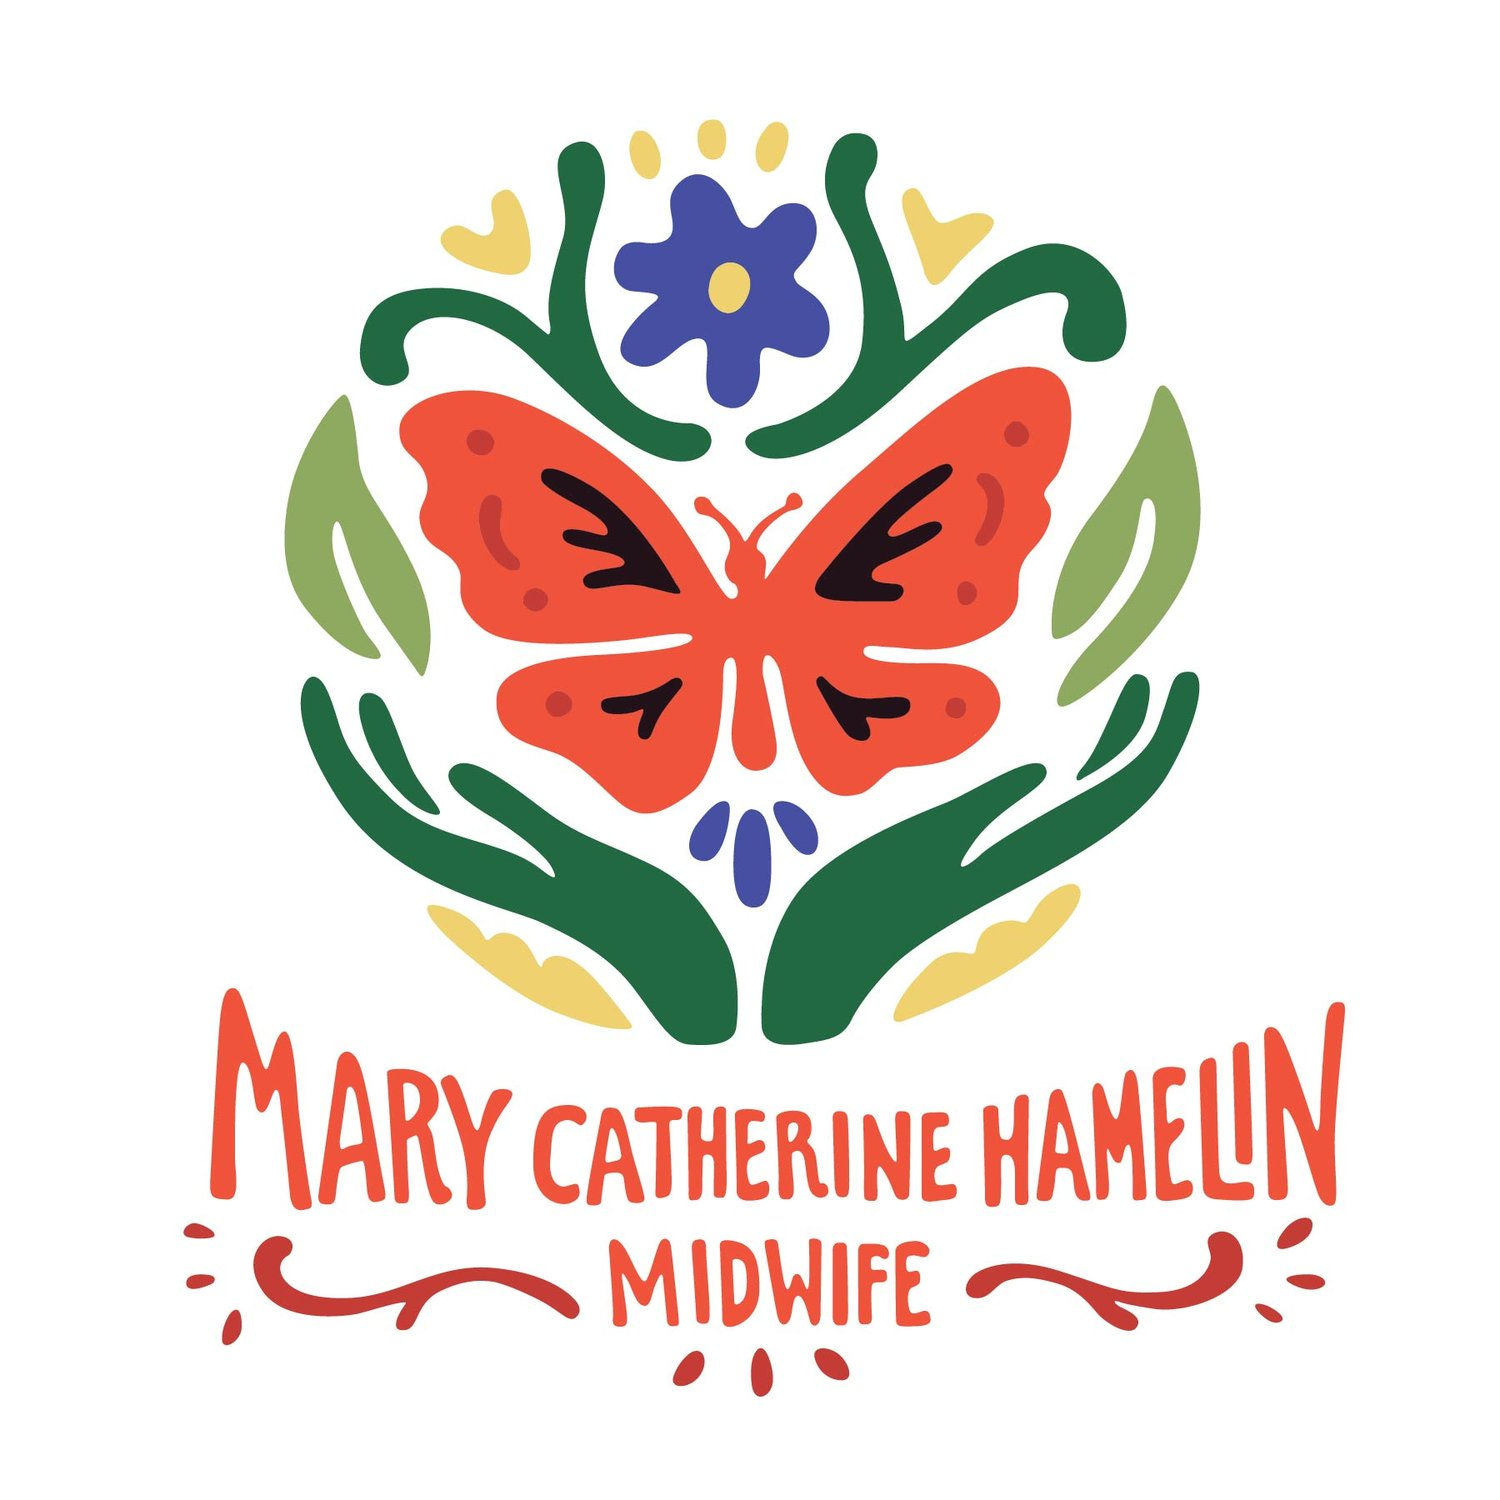 Mary Catherine Hamelin ~ South Tampa Homebirth Midwife